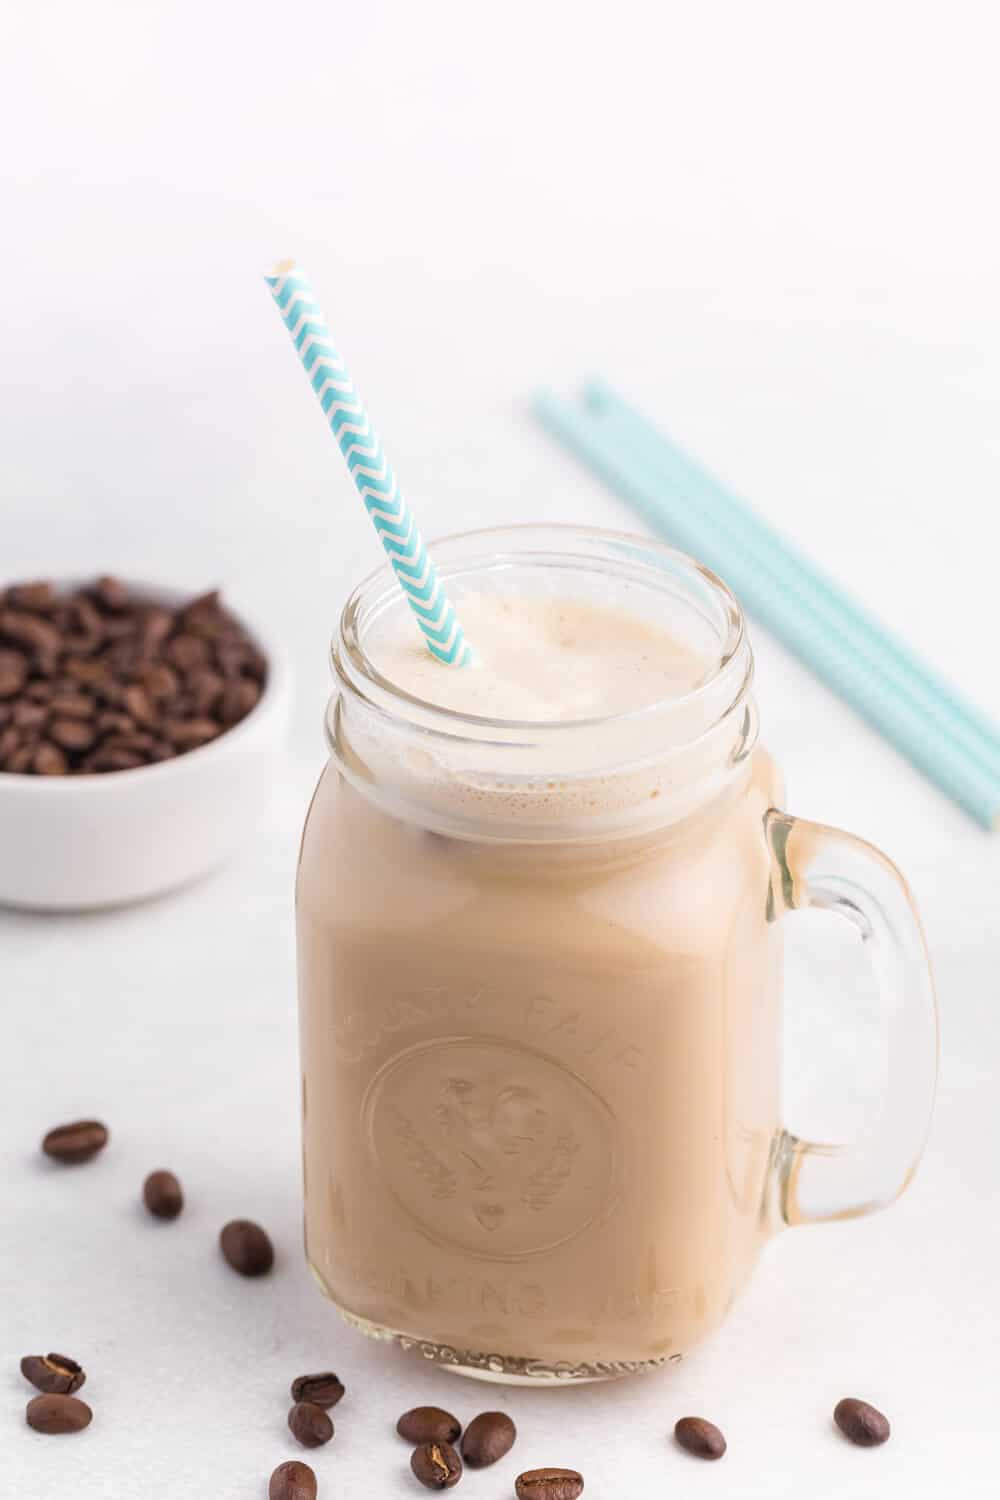 The Best Iced Coffee Ever - Cold, creamy sweet perfection! This easy summer drink can be whipped up in a minute. Made with a secret ingredient that brings it to the next level.